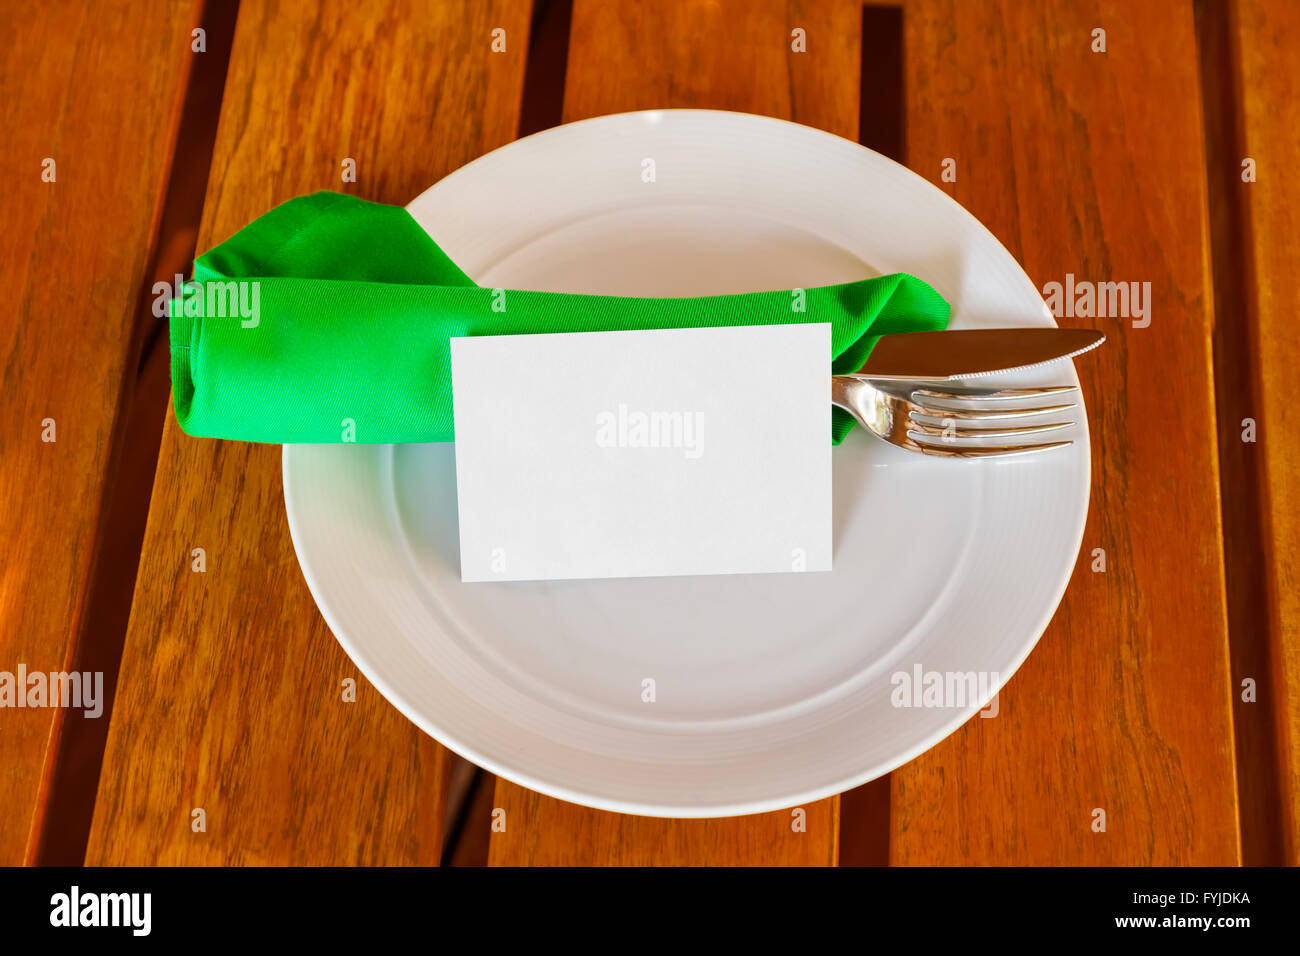 Dishware and blank paper card on table in restaurant Stock Photo